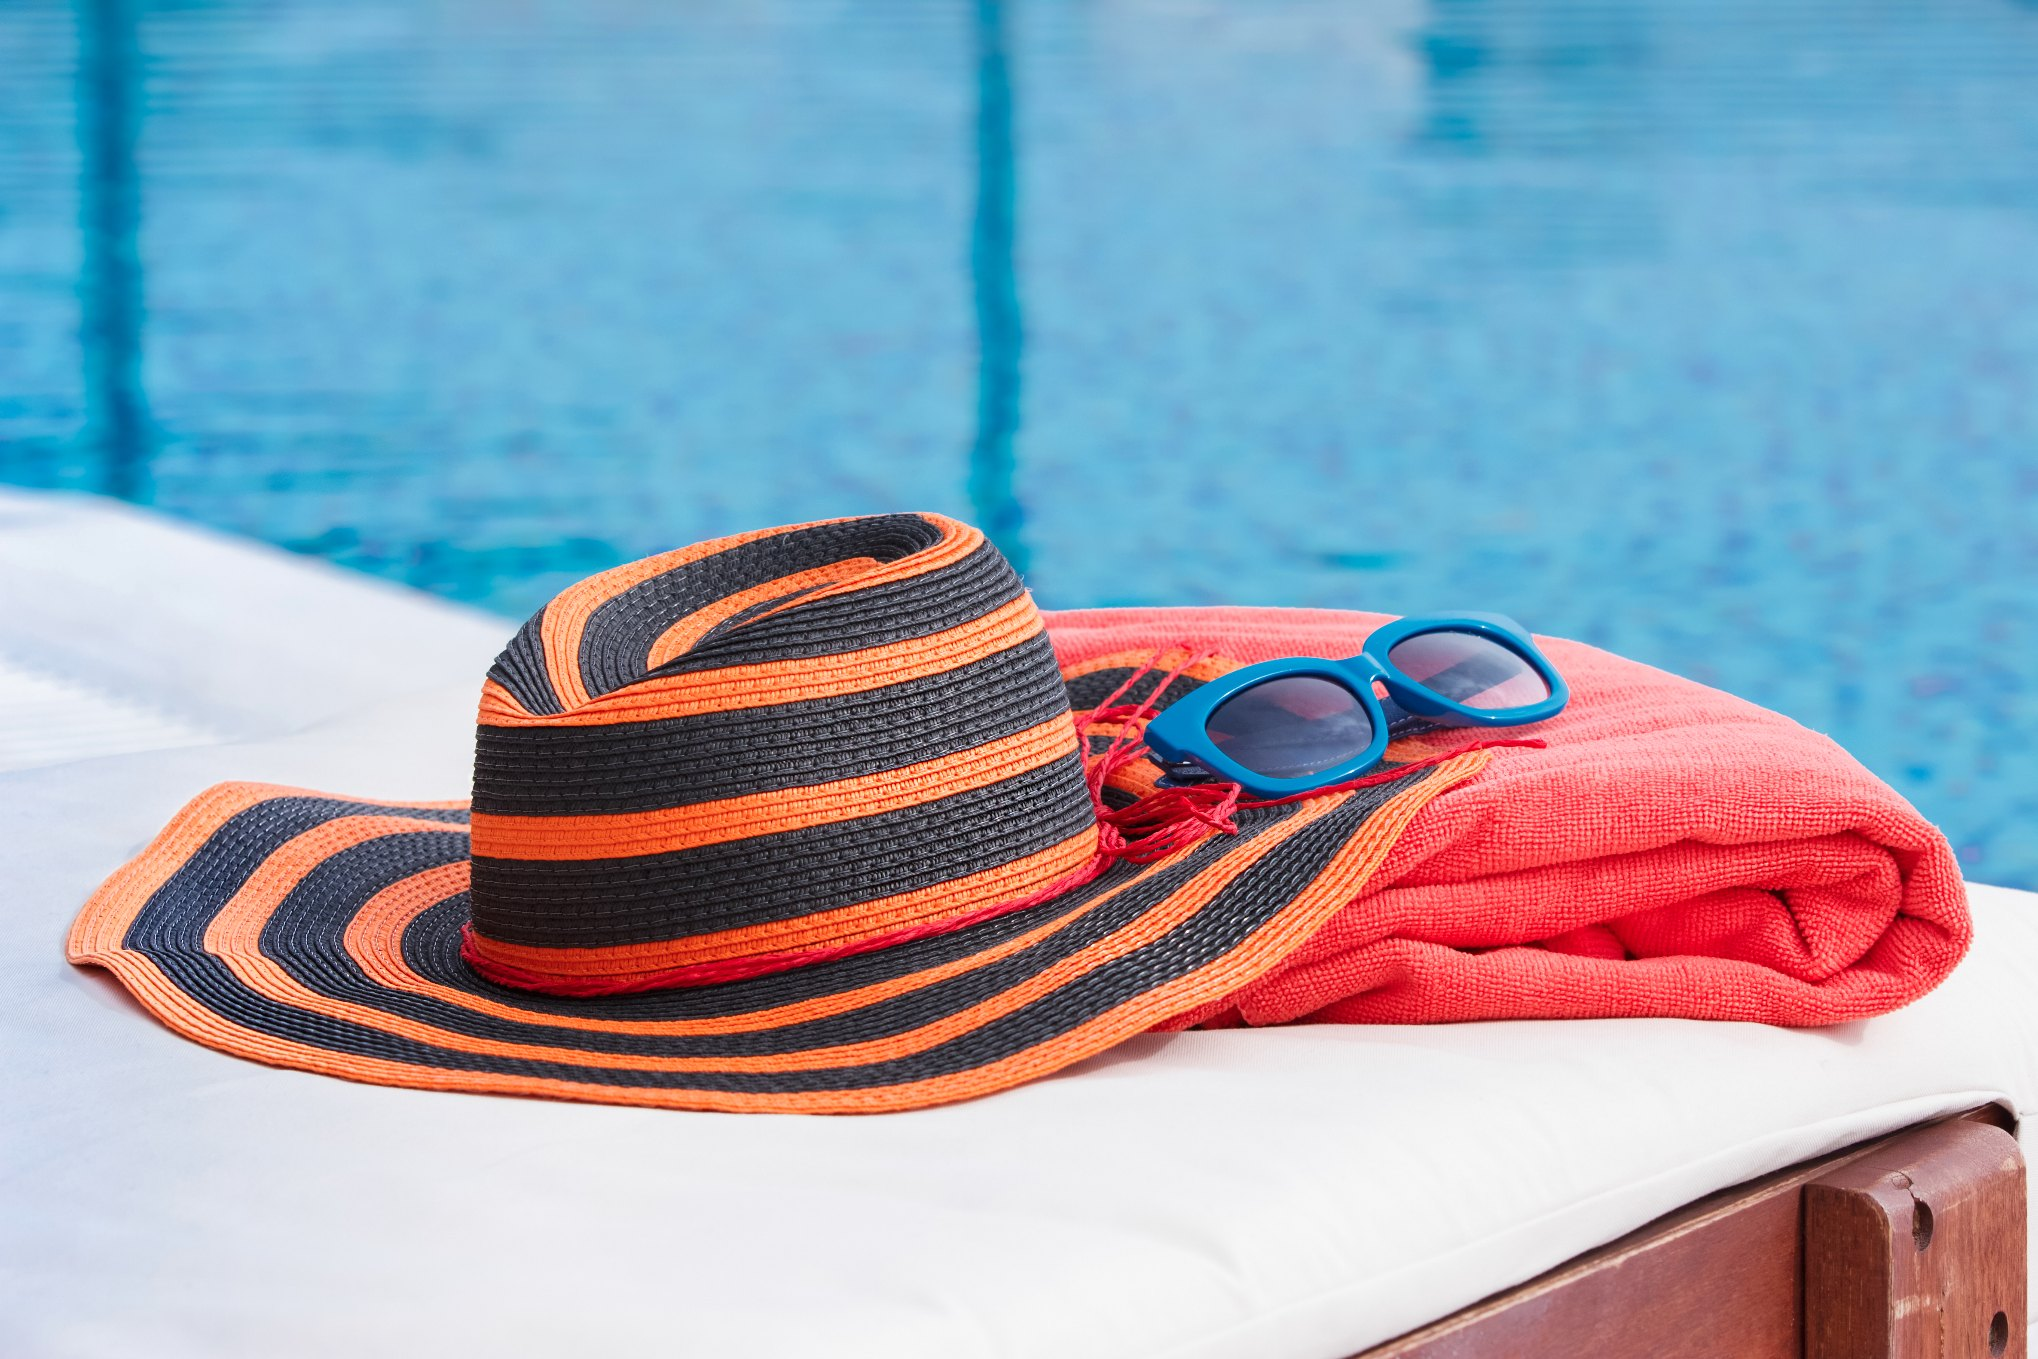 POOL SIDE WITH TOWEL AND A HAT